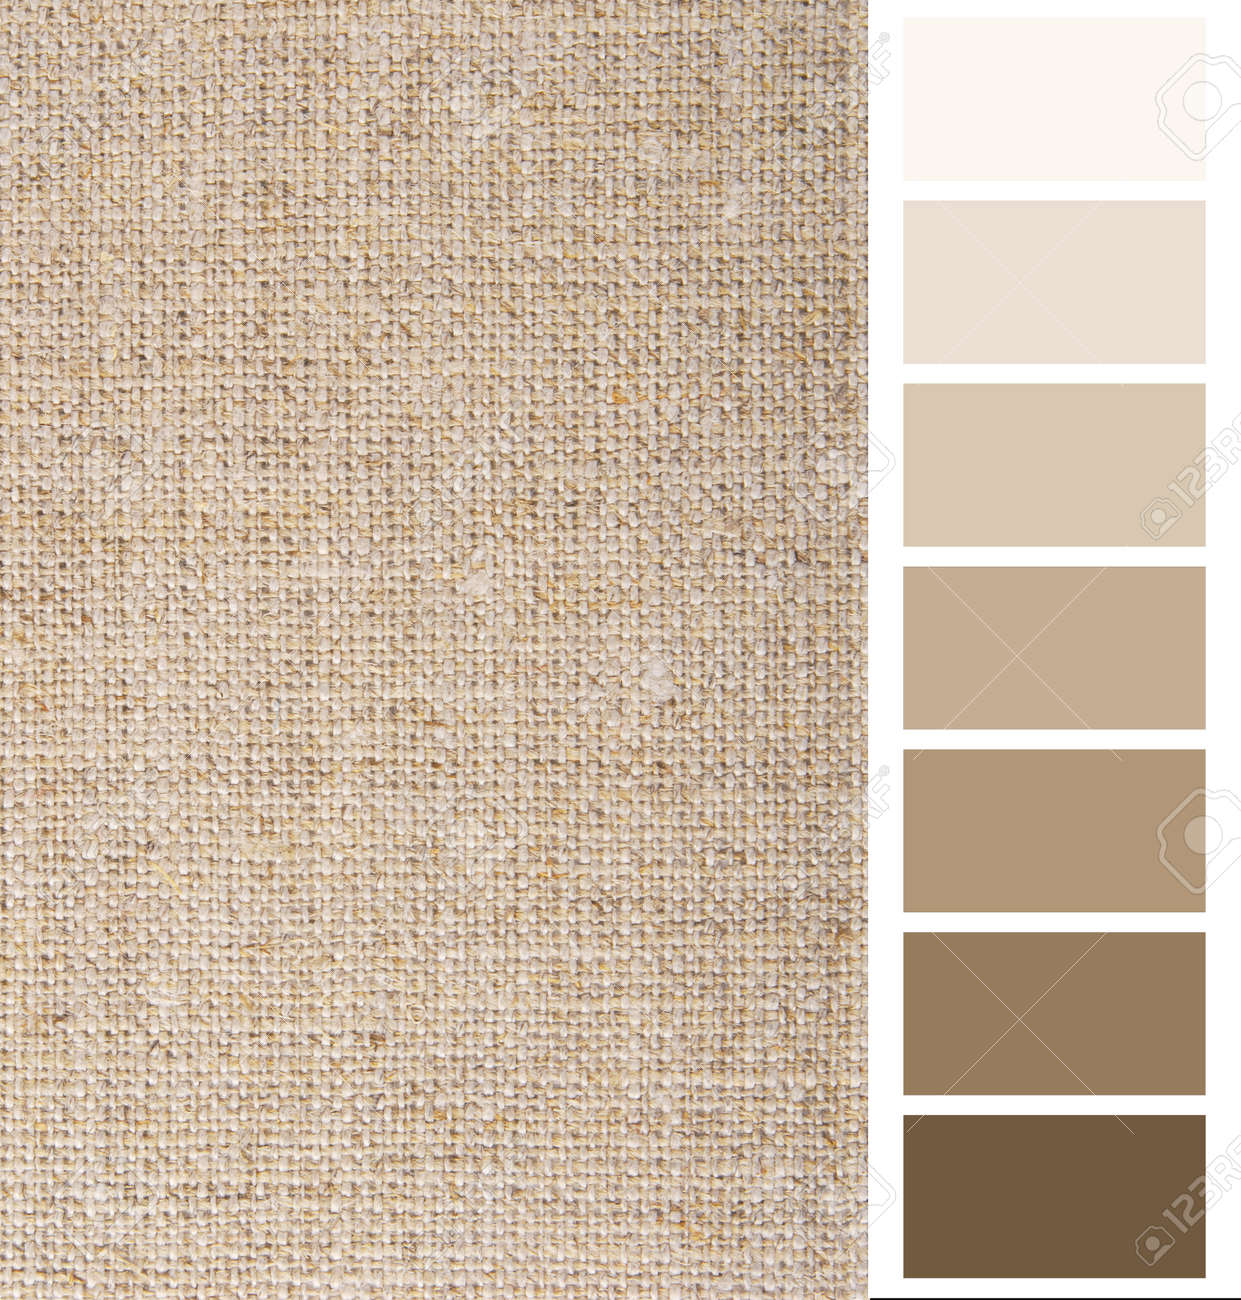 Linen hessian fabric color chart complimentary card stock photo linen hessian fabric color chart complimentary card stock photo 38740518 nvjuhfo Gallery